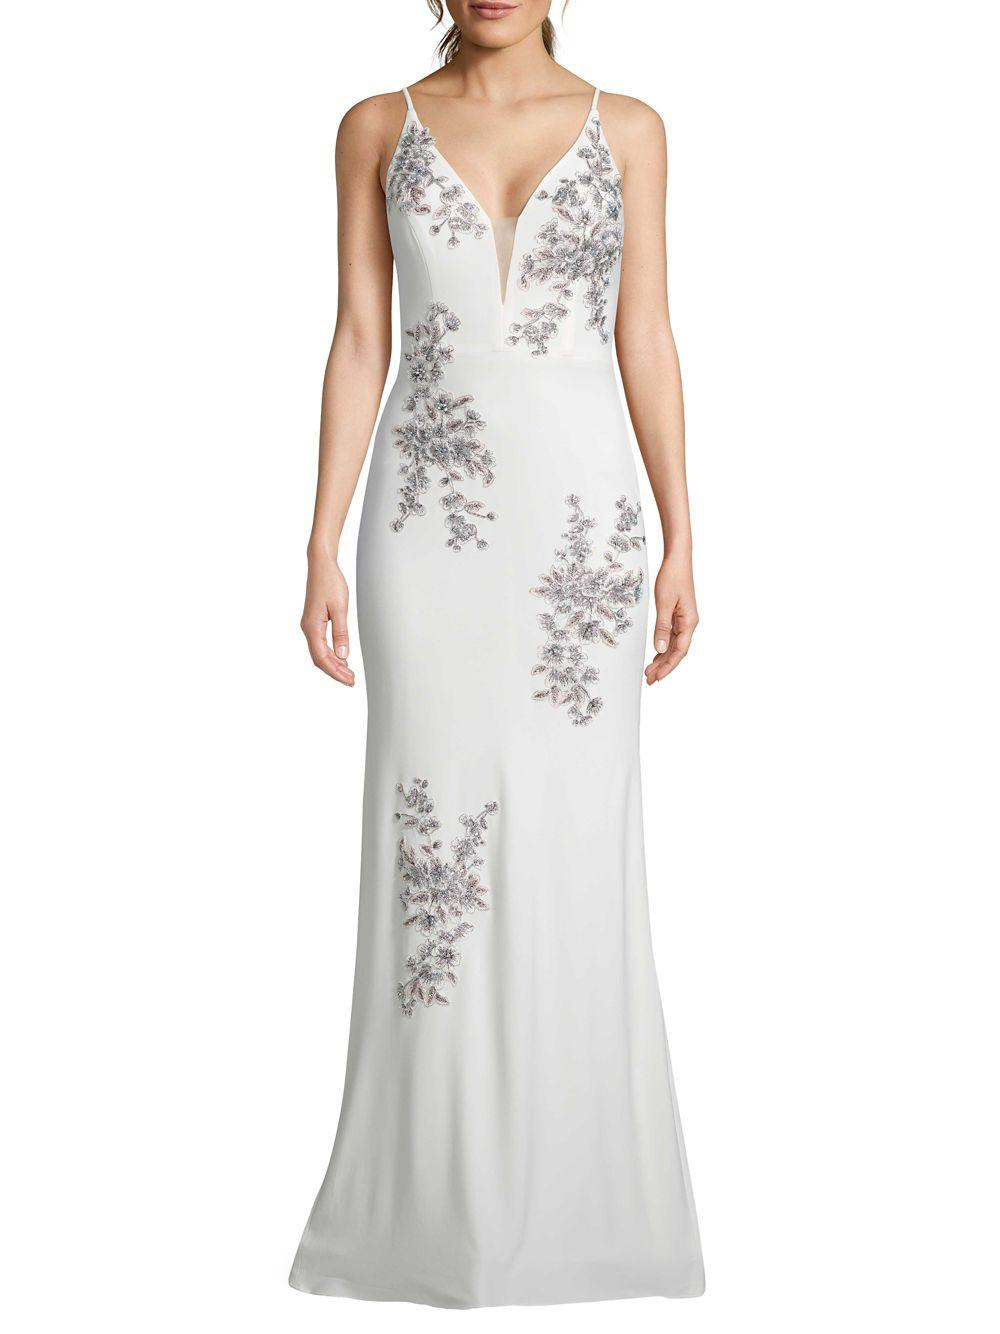 765c61ccf4b Xscape Embellished Floral Evening Gown in White - Save 43% - Lyst